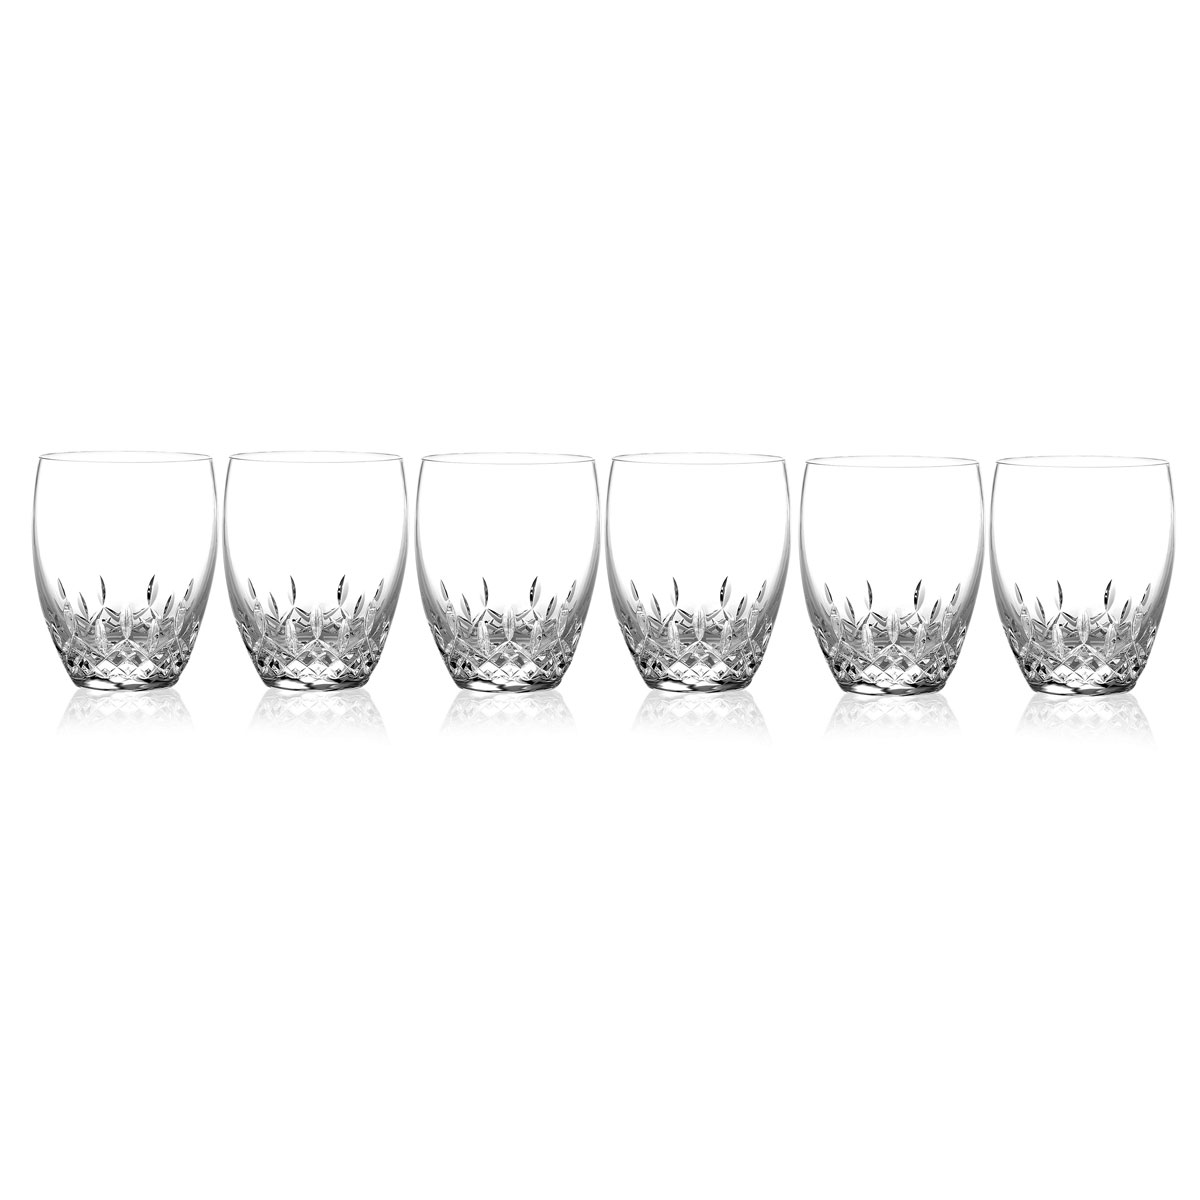 Waterford Crystal, Lismore Essence Crystal DOF Tumblers, Set of 5+1 Free